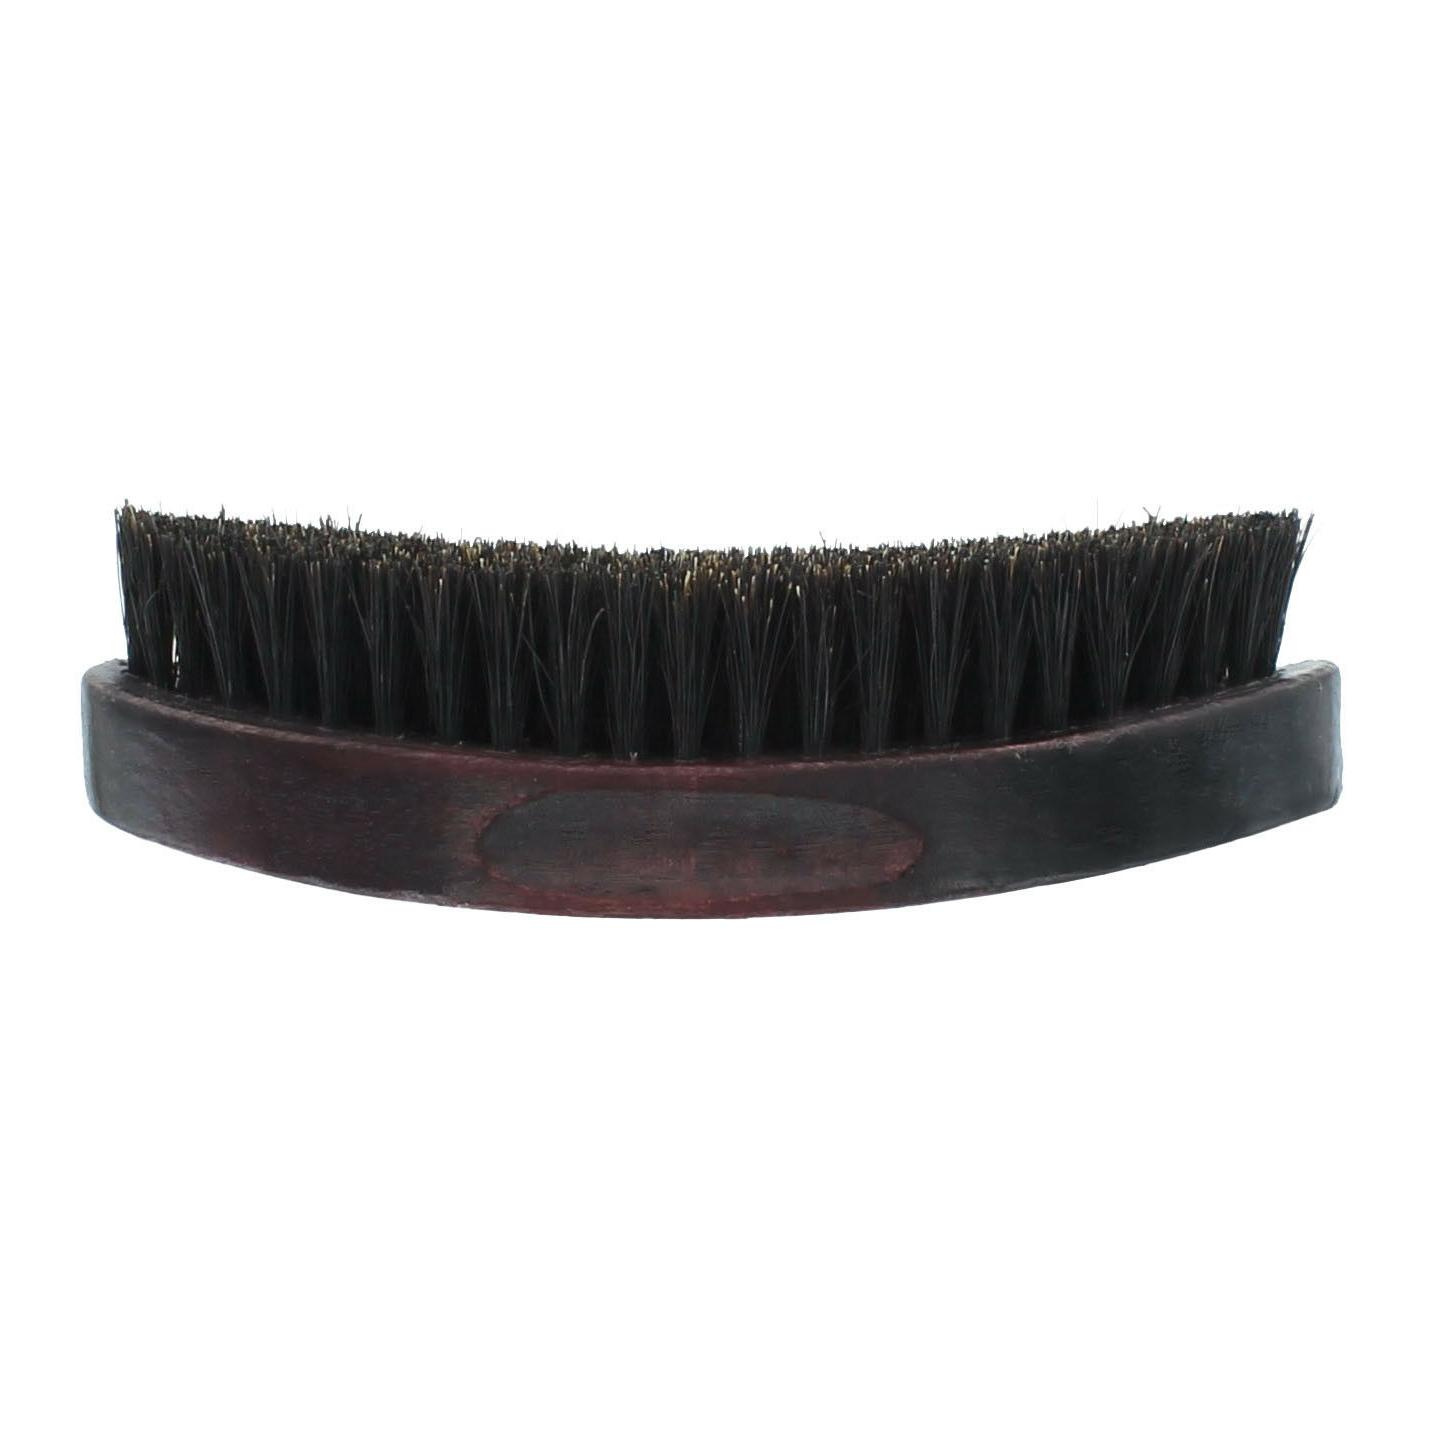 Curved Soft Wave Brush Handle NEW